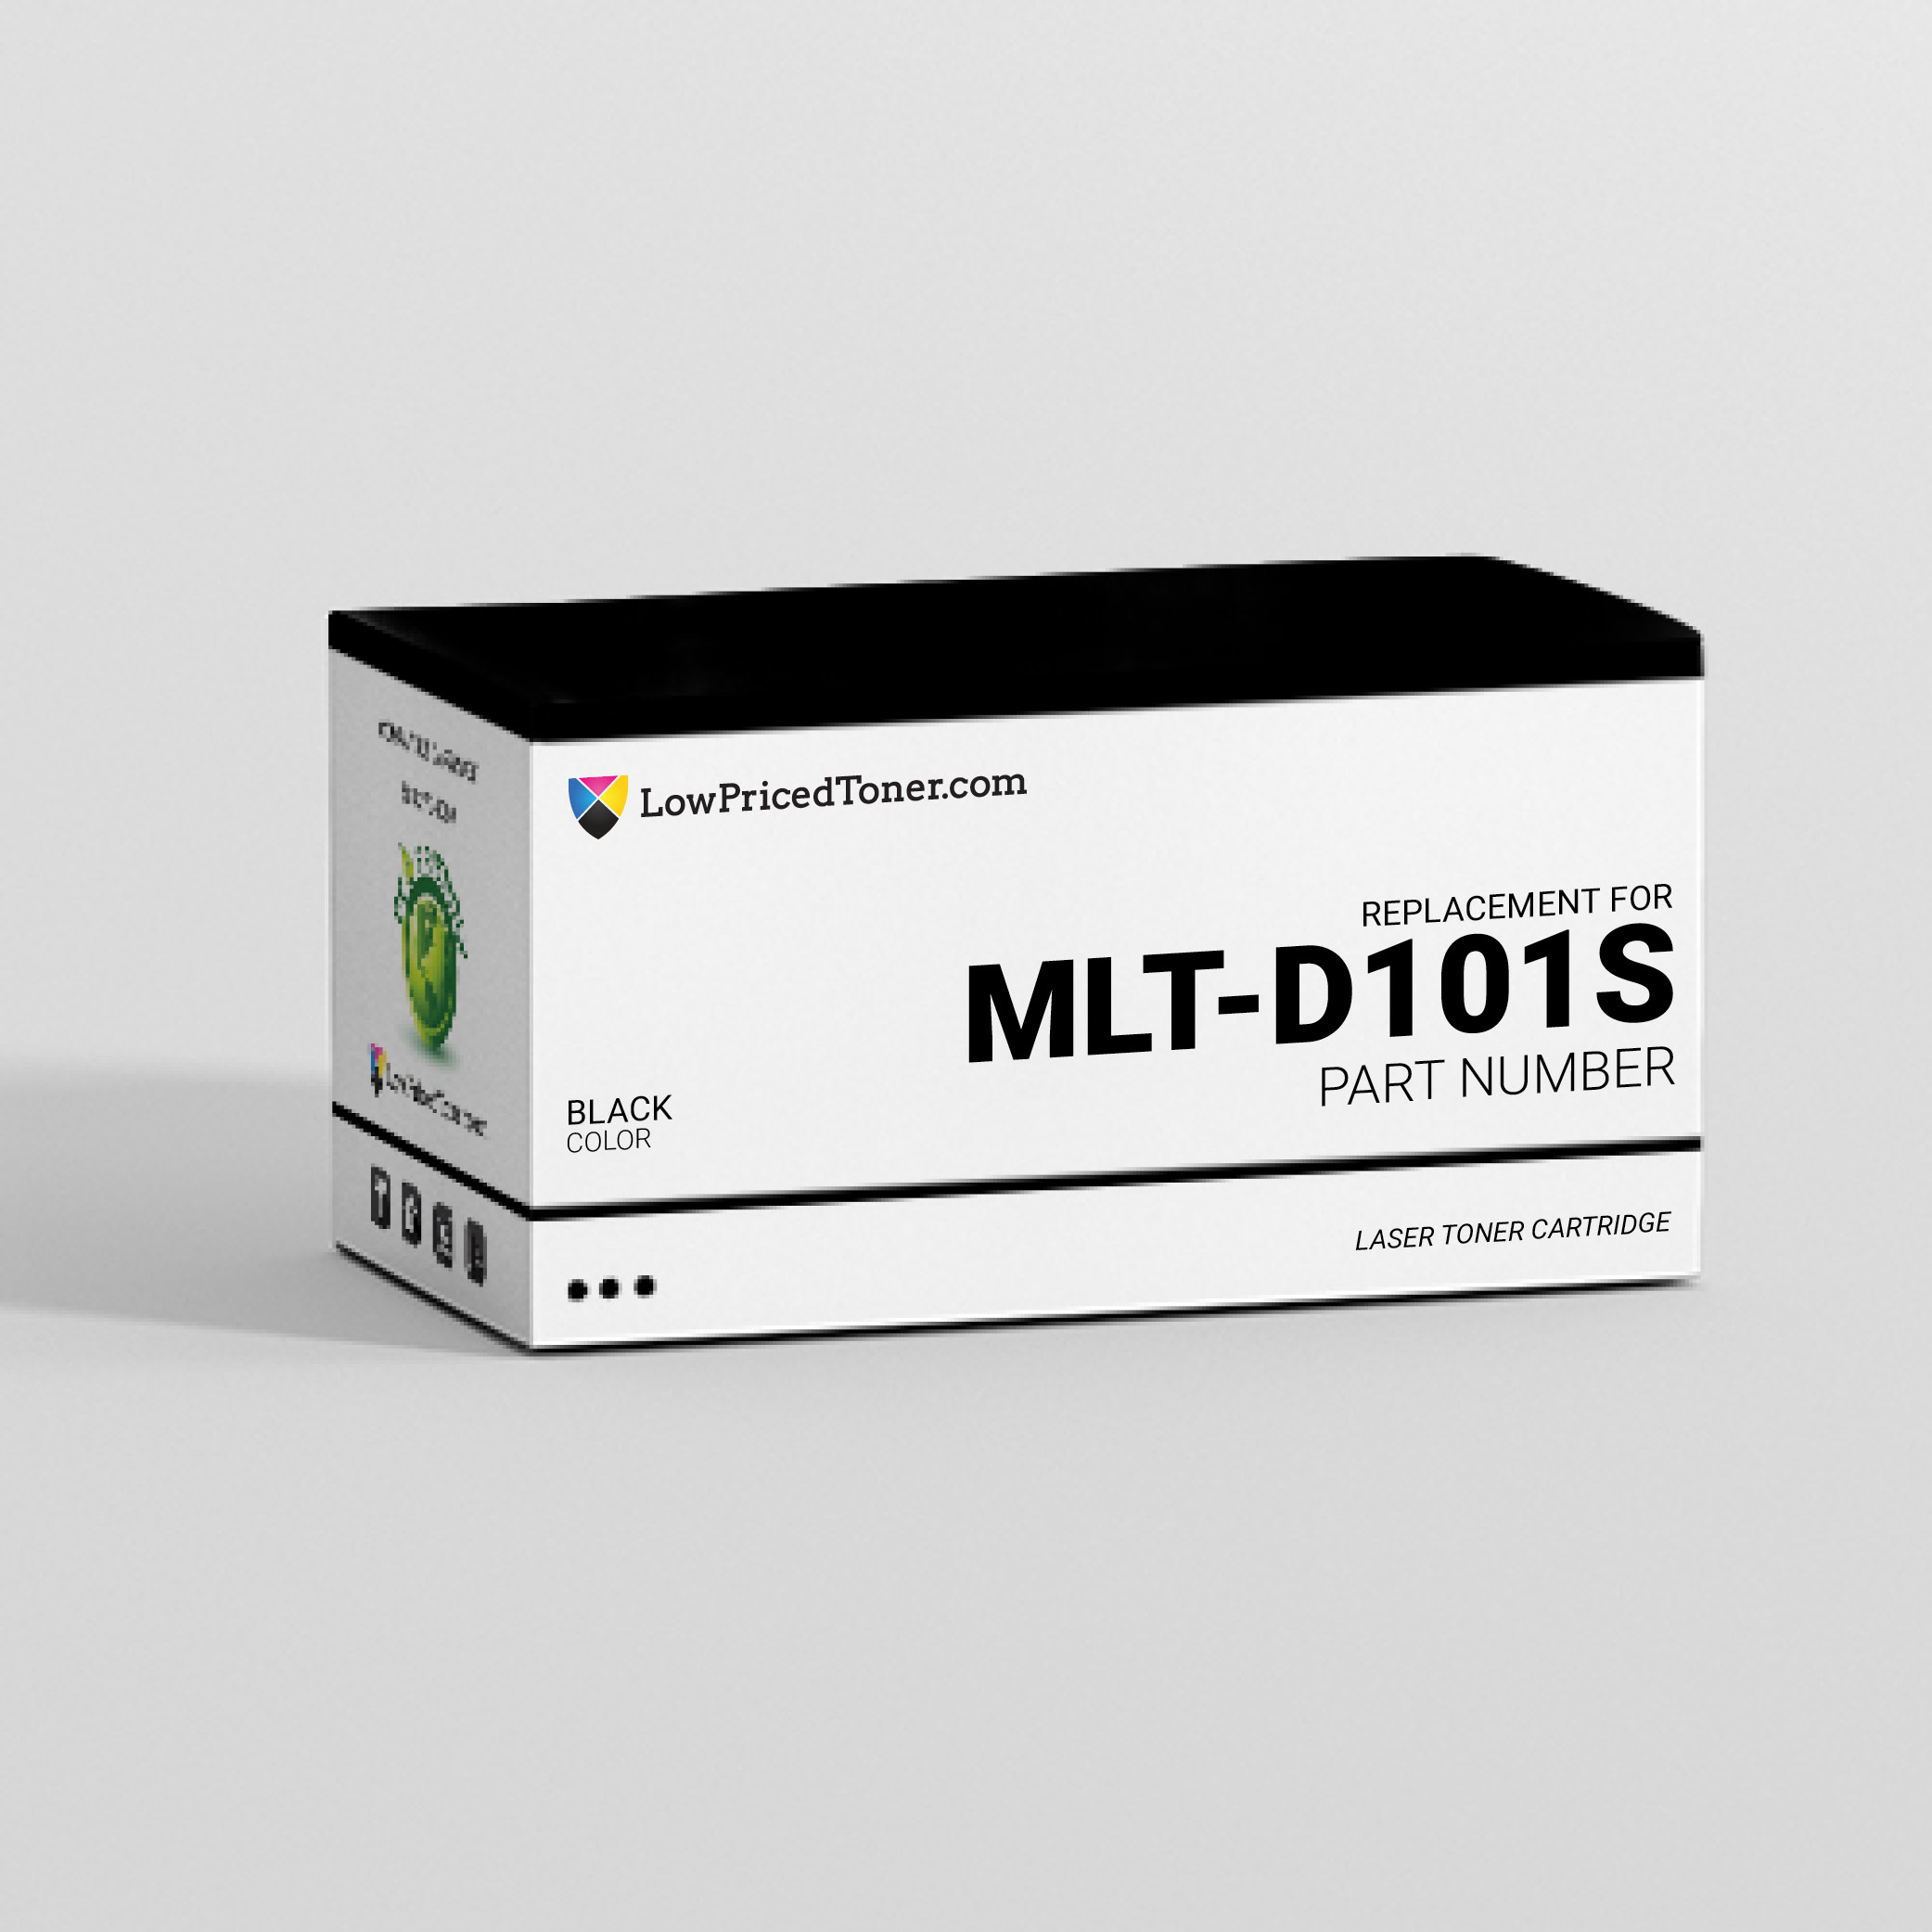 Samsung MLT-D101S Compatible Black Laser Toner Cartridge